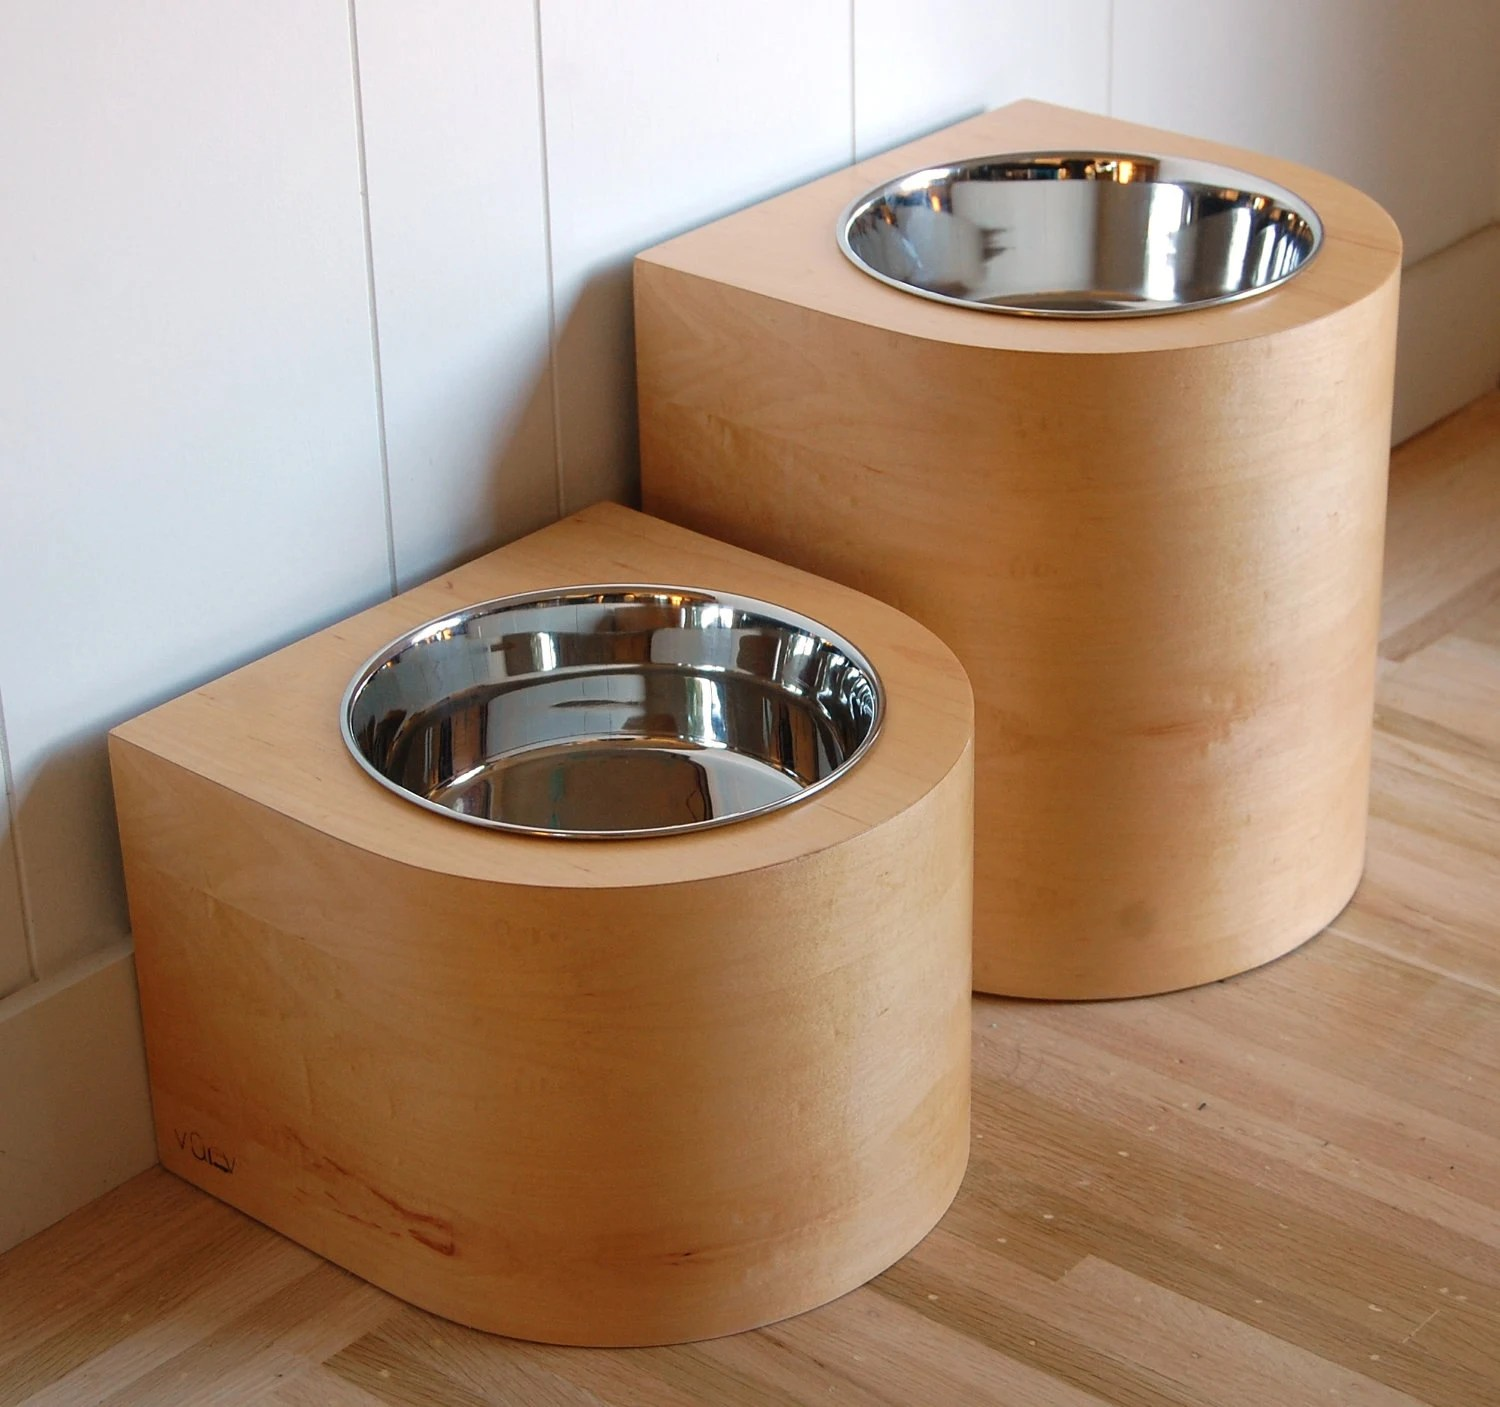 2 quart raised feeder set for large dogs - SALE